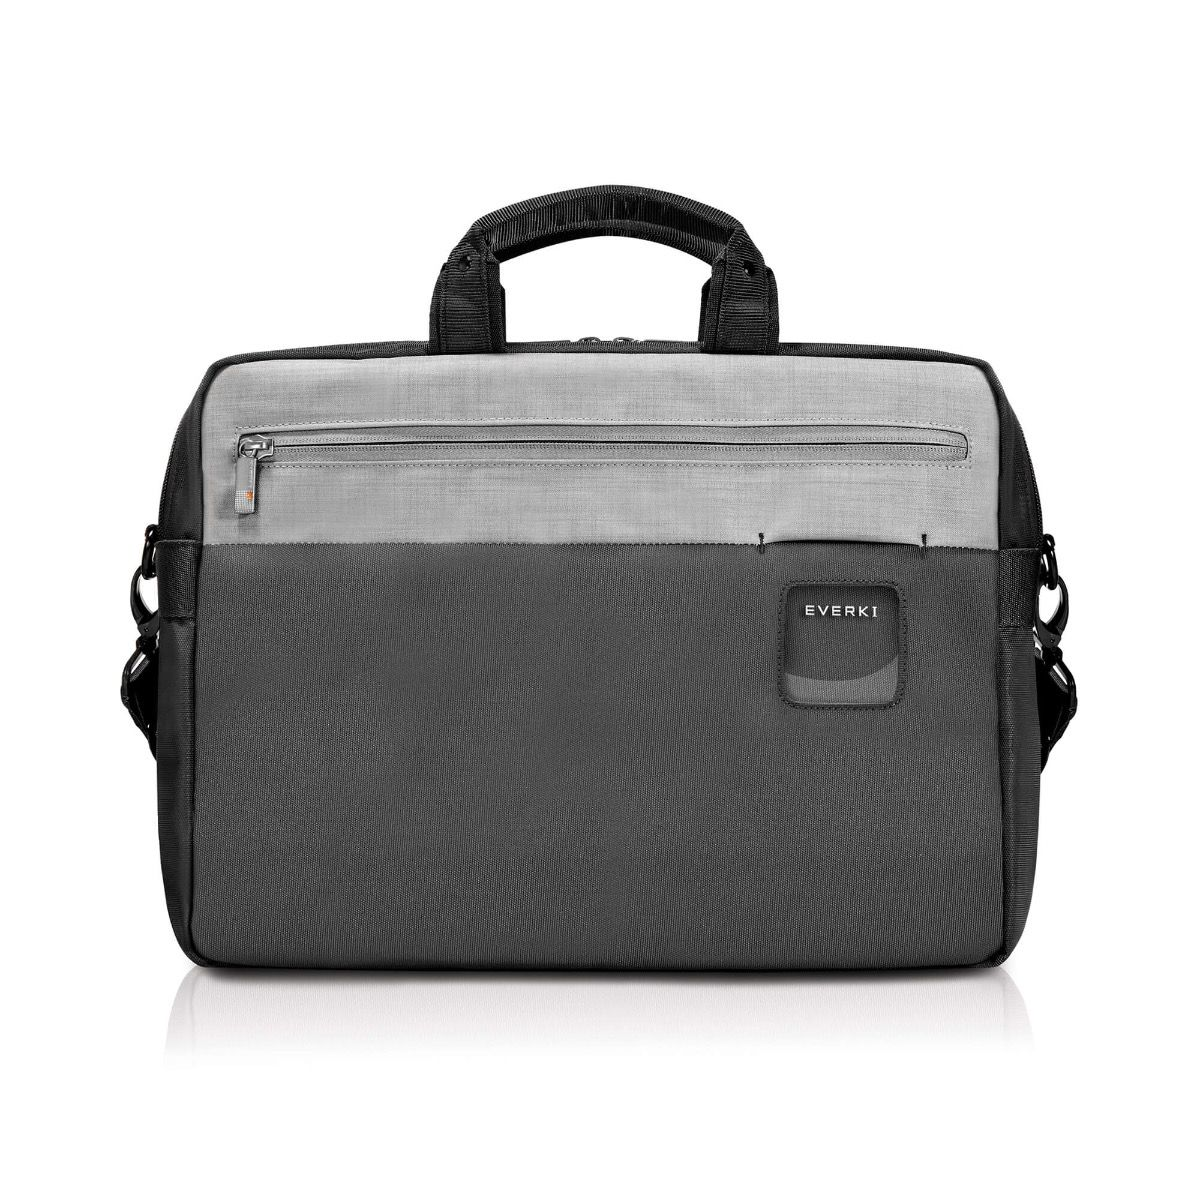 EVERKI ContemPRO 15 Inch Black Laptop Briefcase